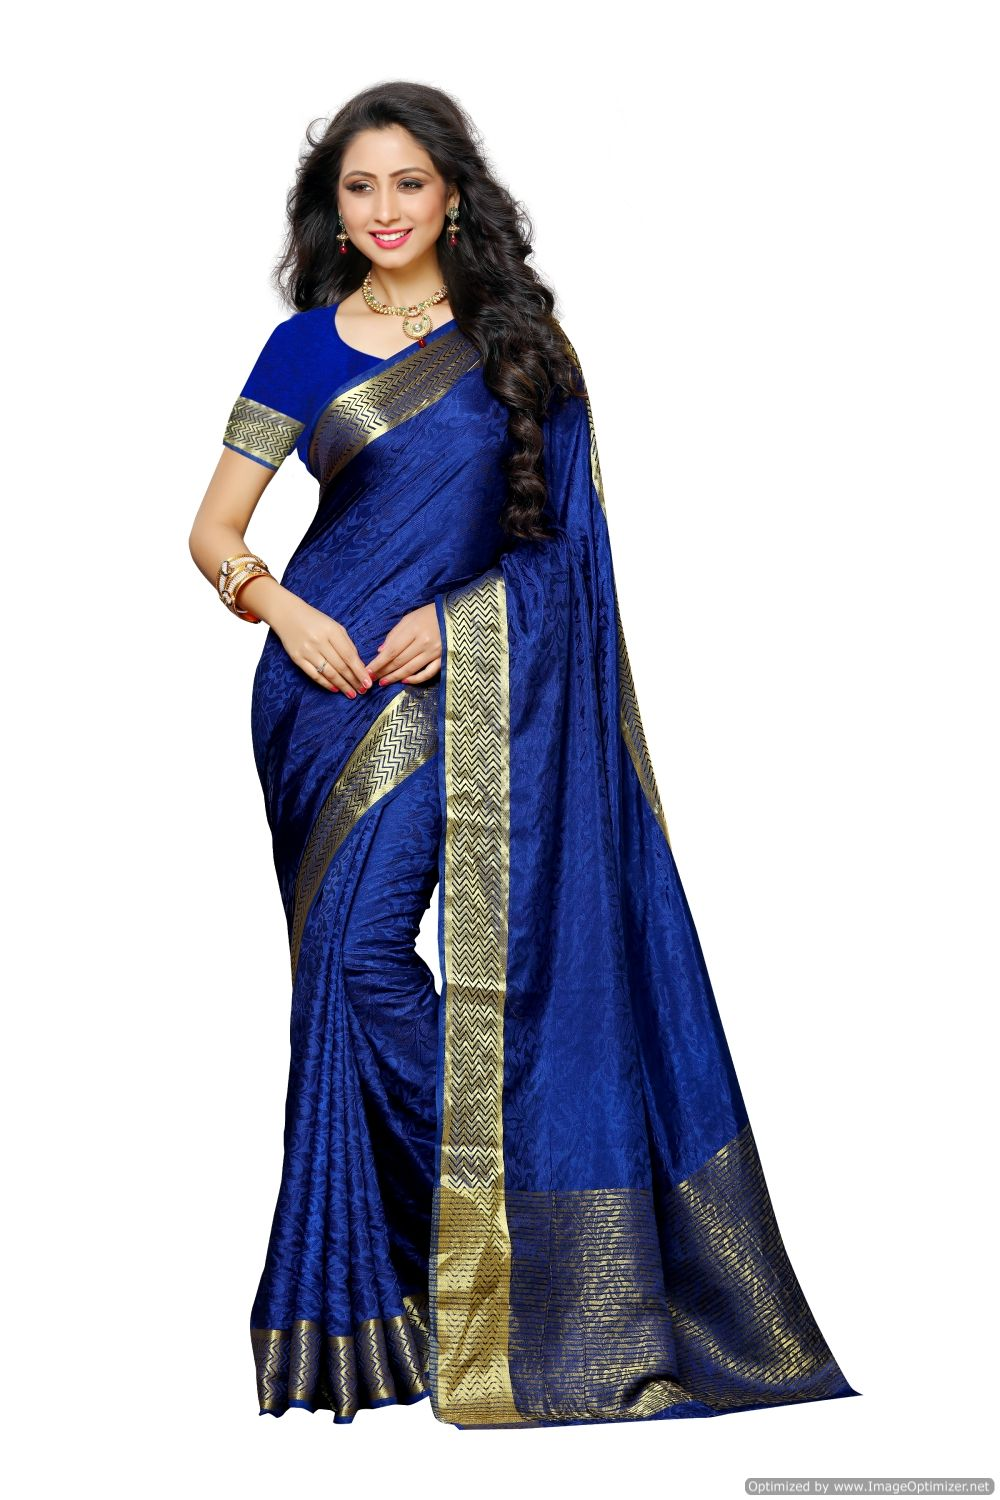 Ethnic Party Wear Weaving Work Bollywood Inspired Sari Indian Khadi Cotton Saree Pure And Mild Flavor Other Women's Clothing